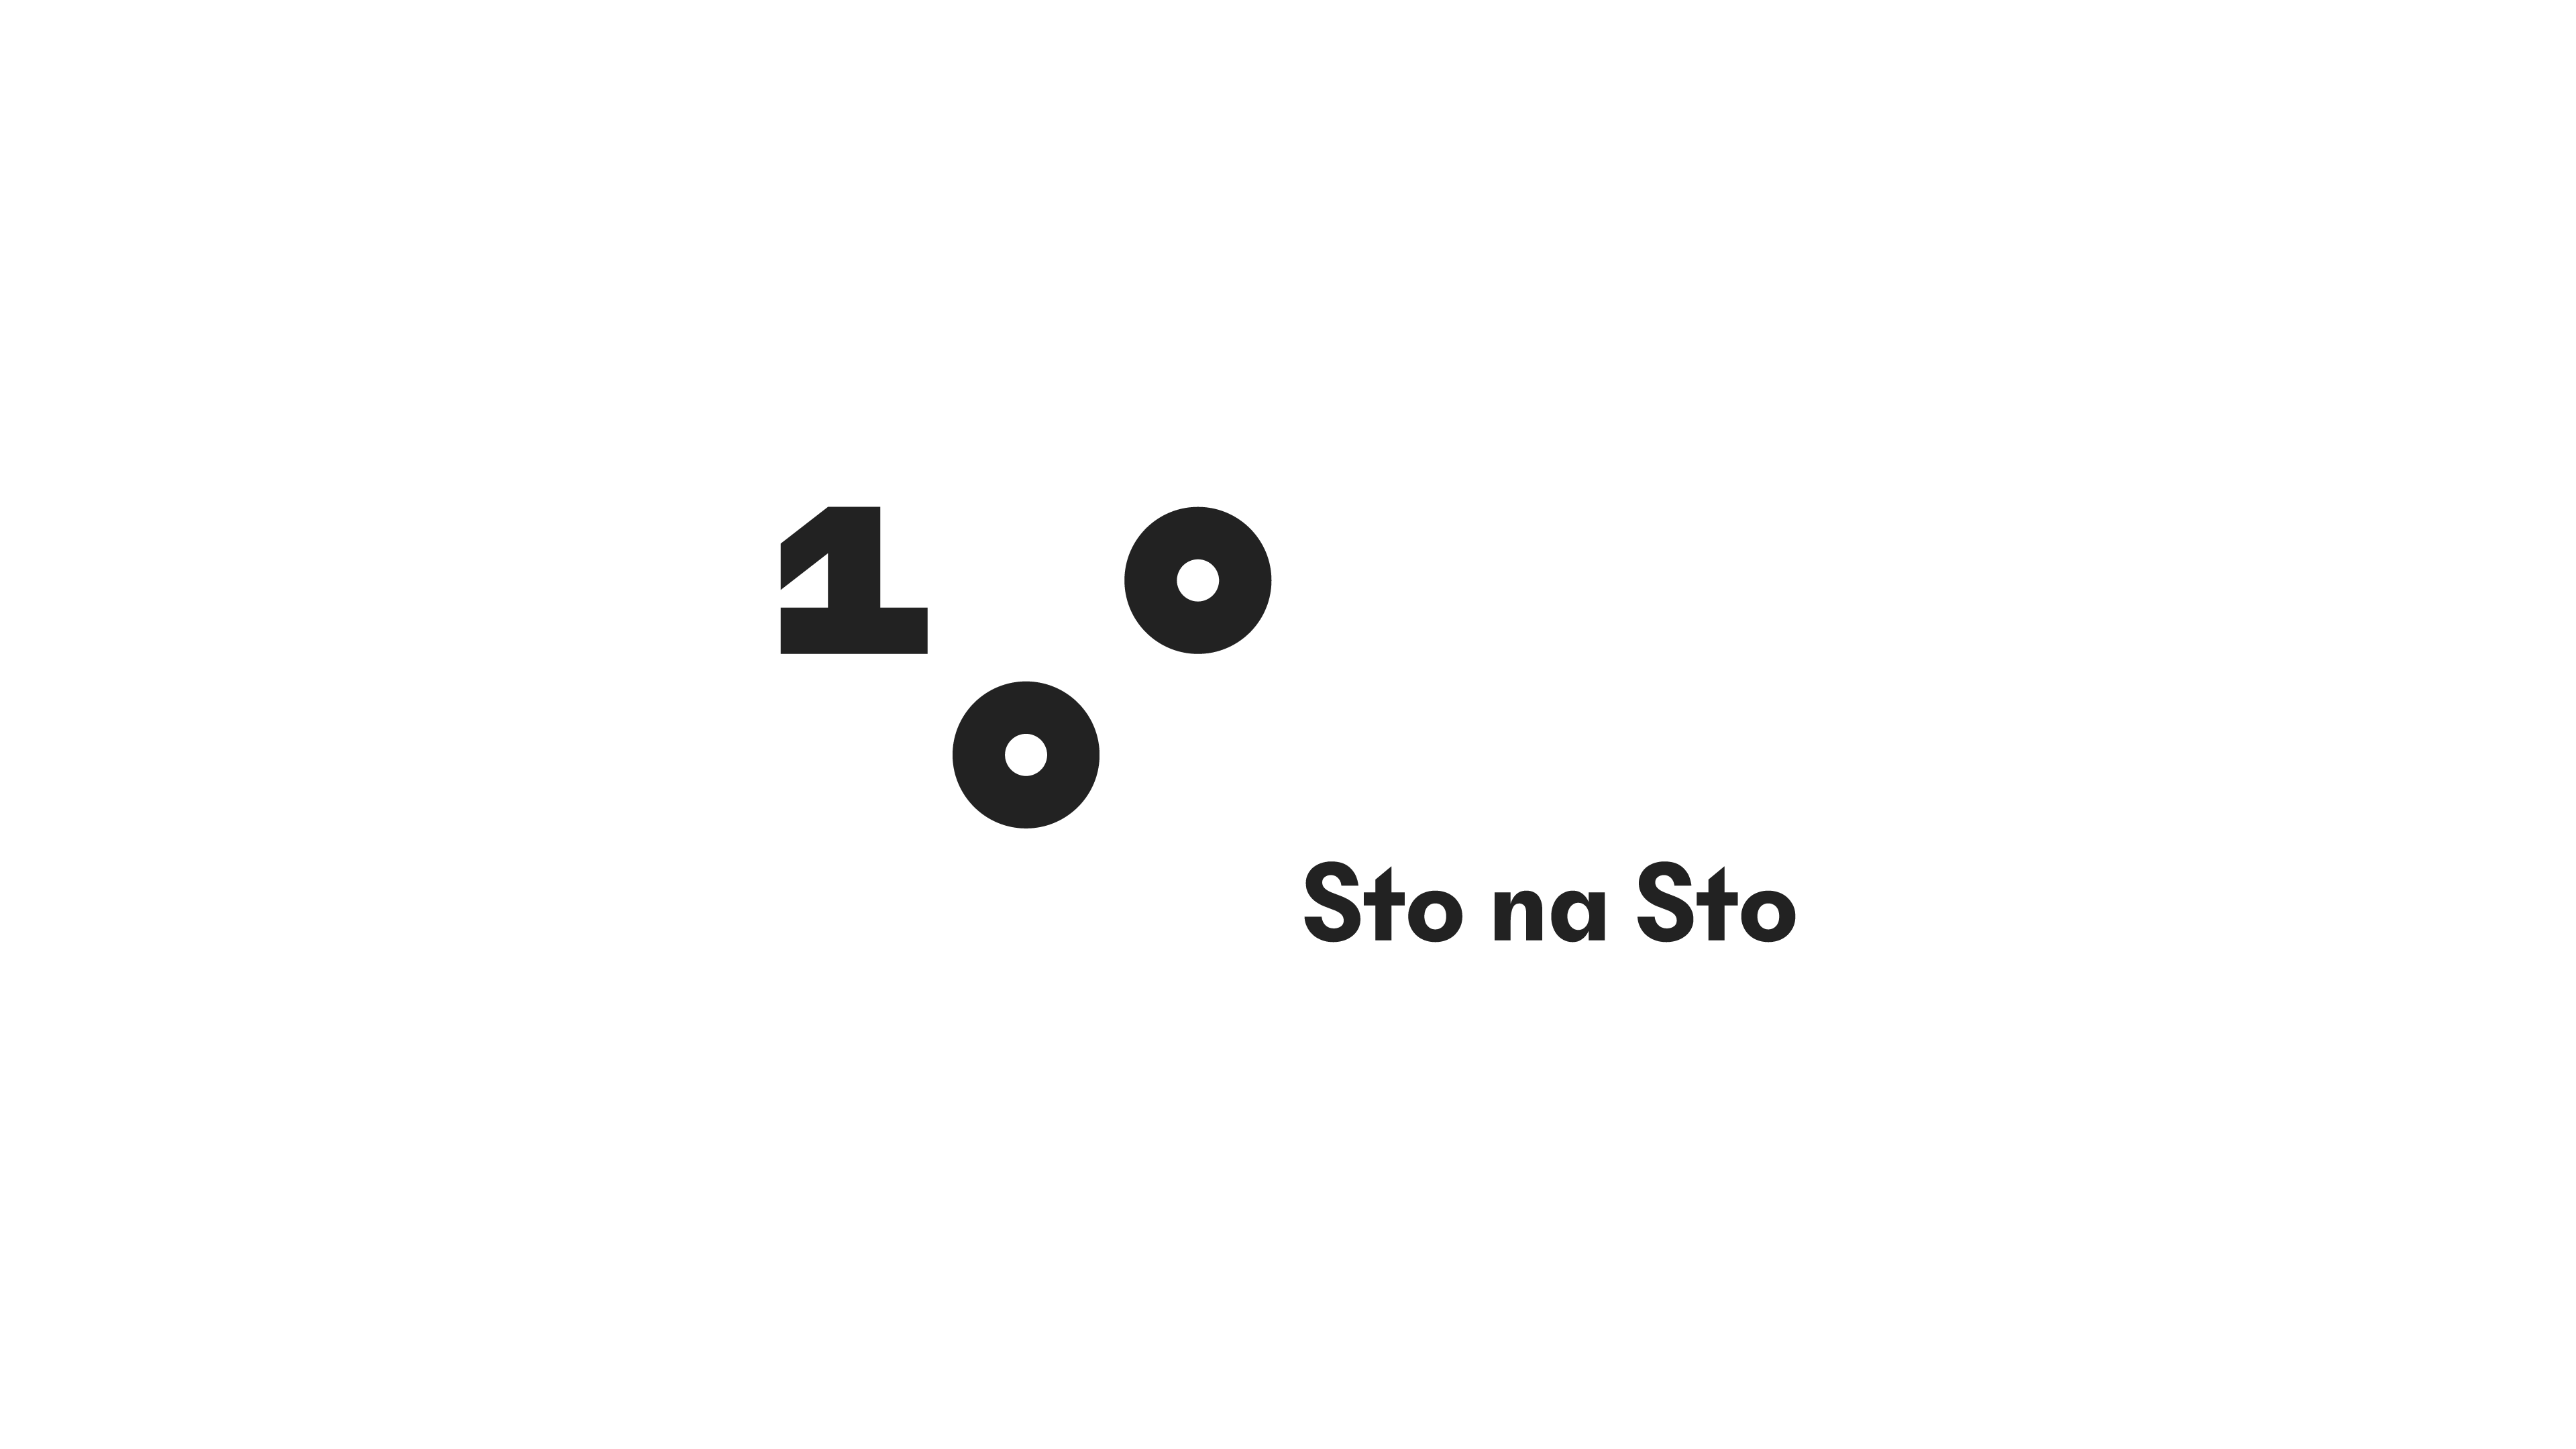 Sto na Sto (1st prize) - The Codeine Design